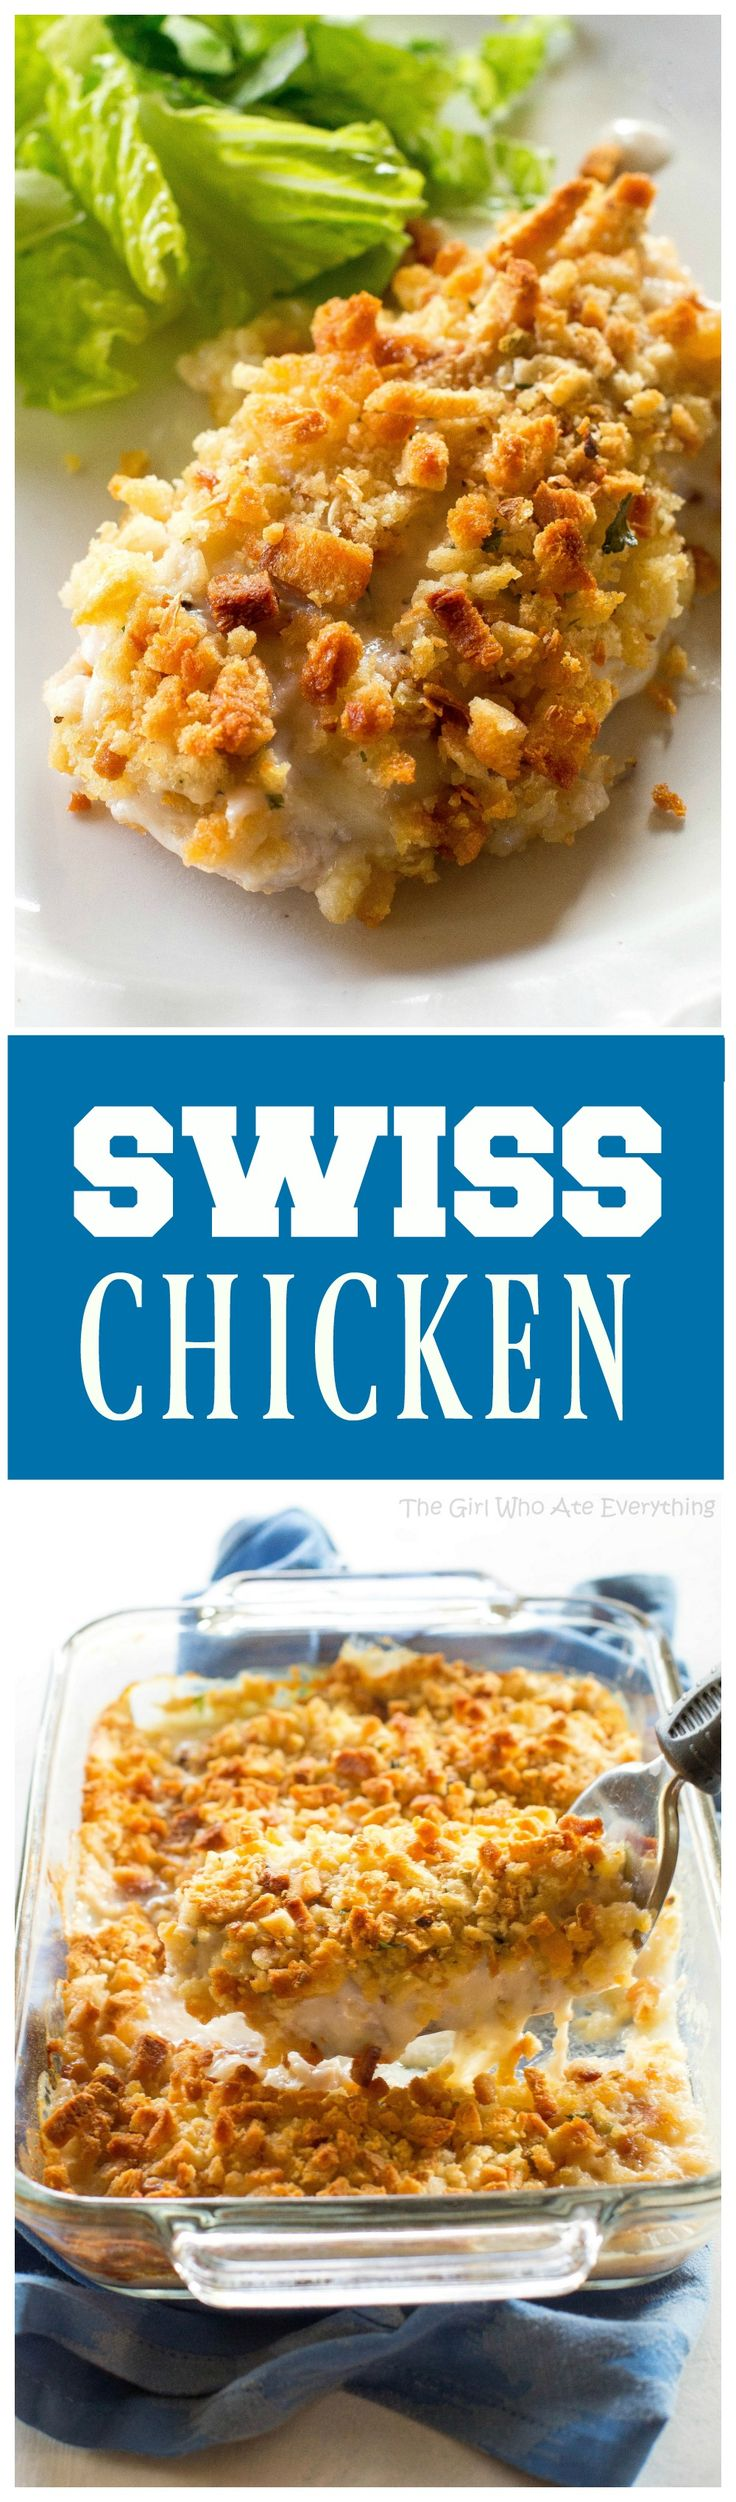 Swiss Chicken - an easy dinner for those busy nights. the-girl-who-ate-everything.com